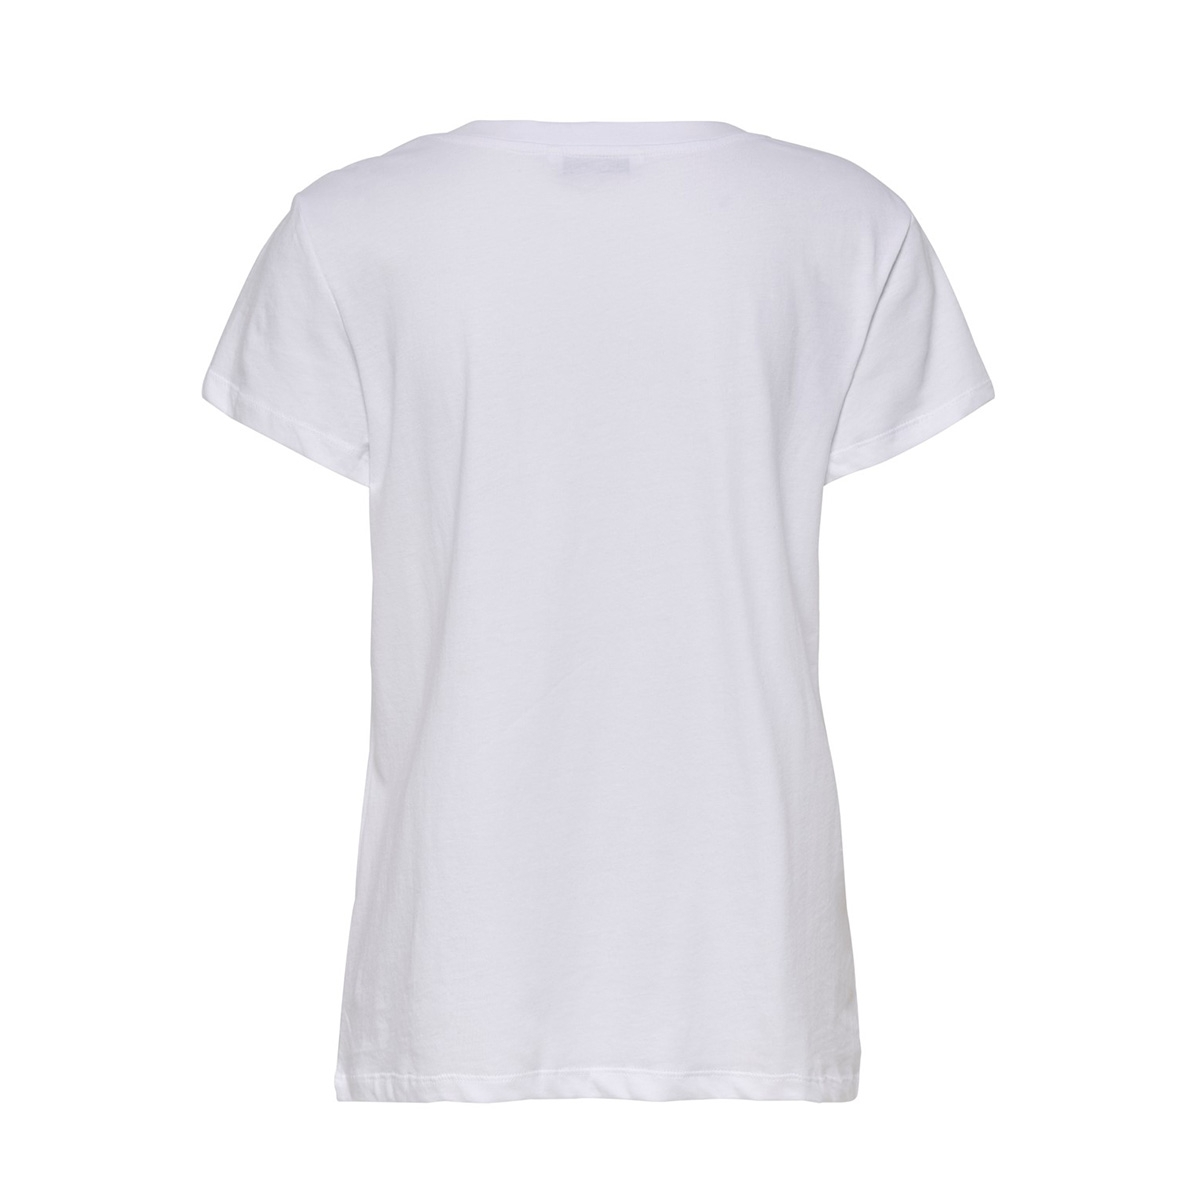 onlmarlyn s/s t-shirt jrs 15204633 only t-shirt white/new york